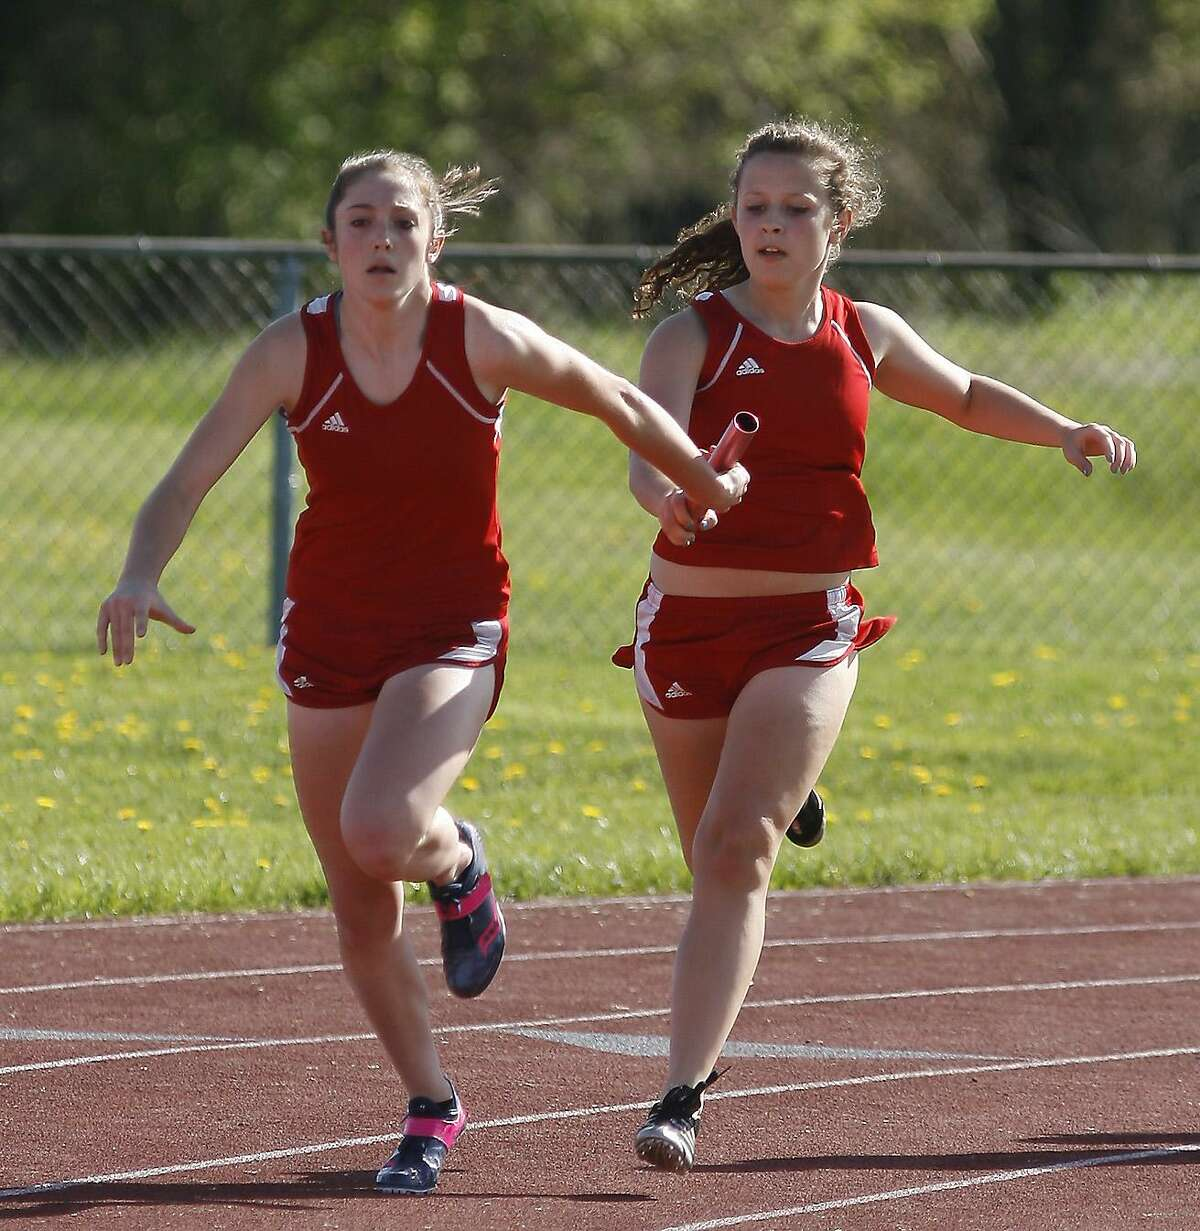 Dispatch Staff Photo by JOHN HAEGER VVS Alexis Kavanaugh takes the handoff from Kayla Prentice for the final leg of the 4x100 relay on Wednesday, May 11, 2011 in a meet against Oneida and UND at VVS. The Red Devils pulled out of the Tri-Valley League on Wednesday, August 24, 2011.